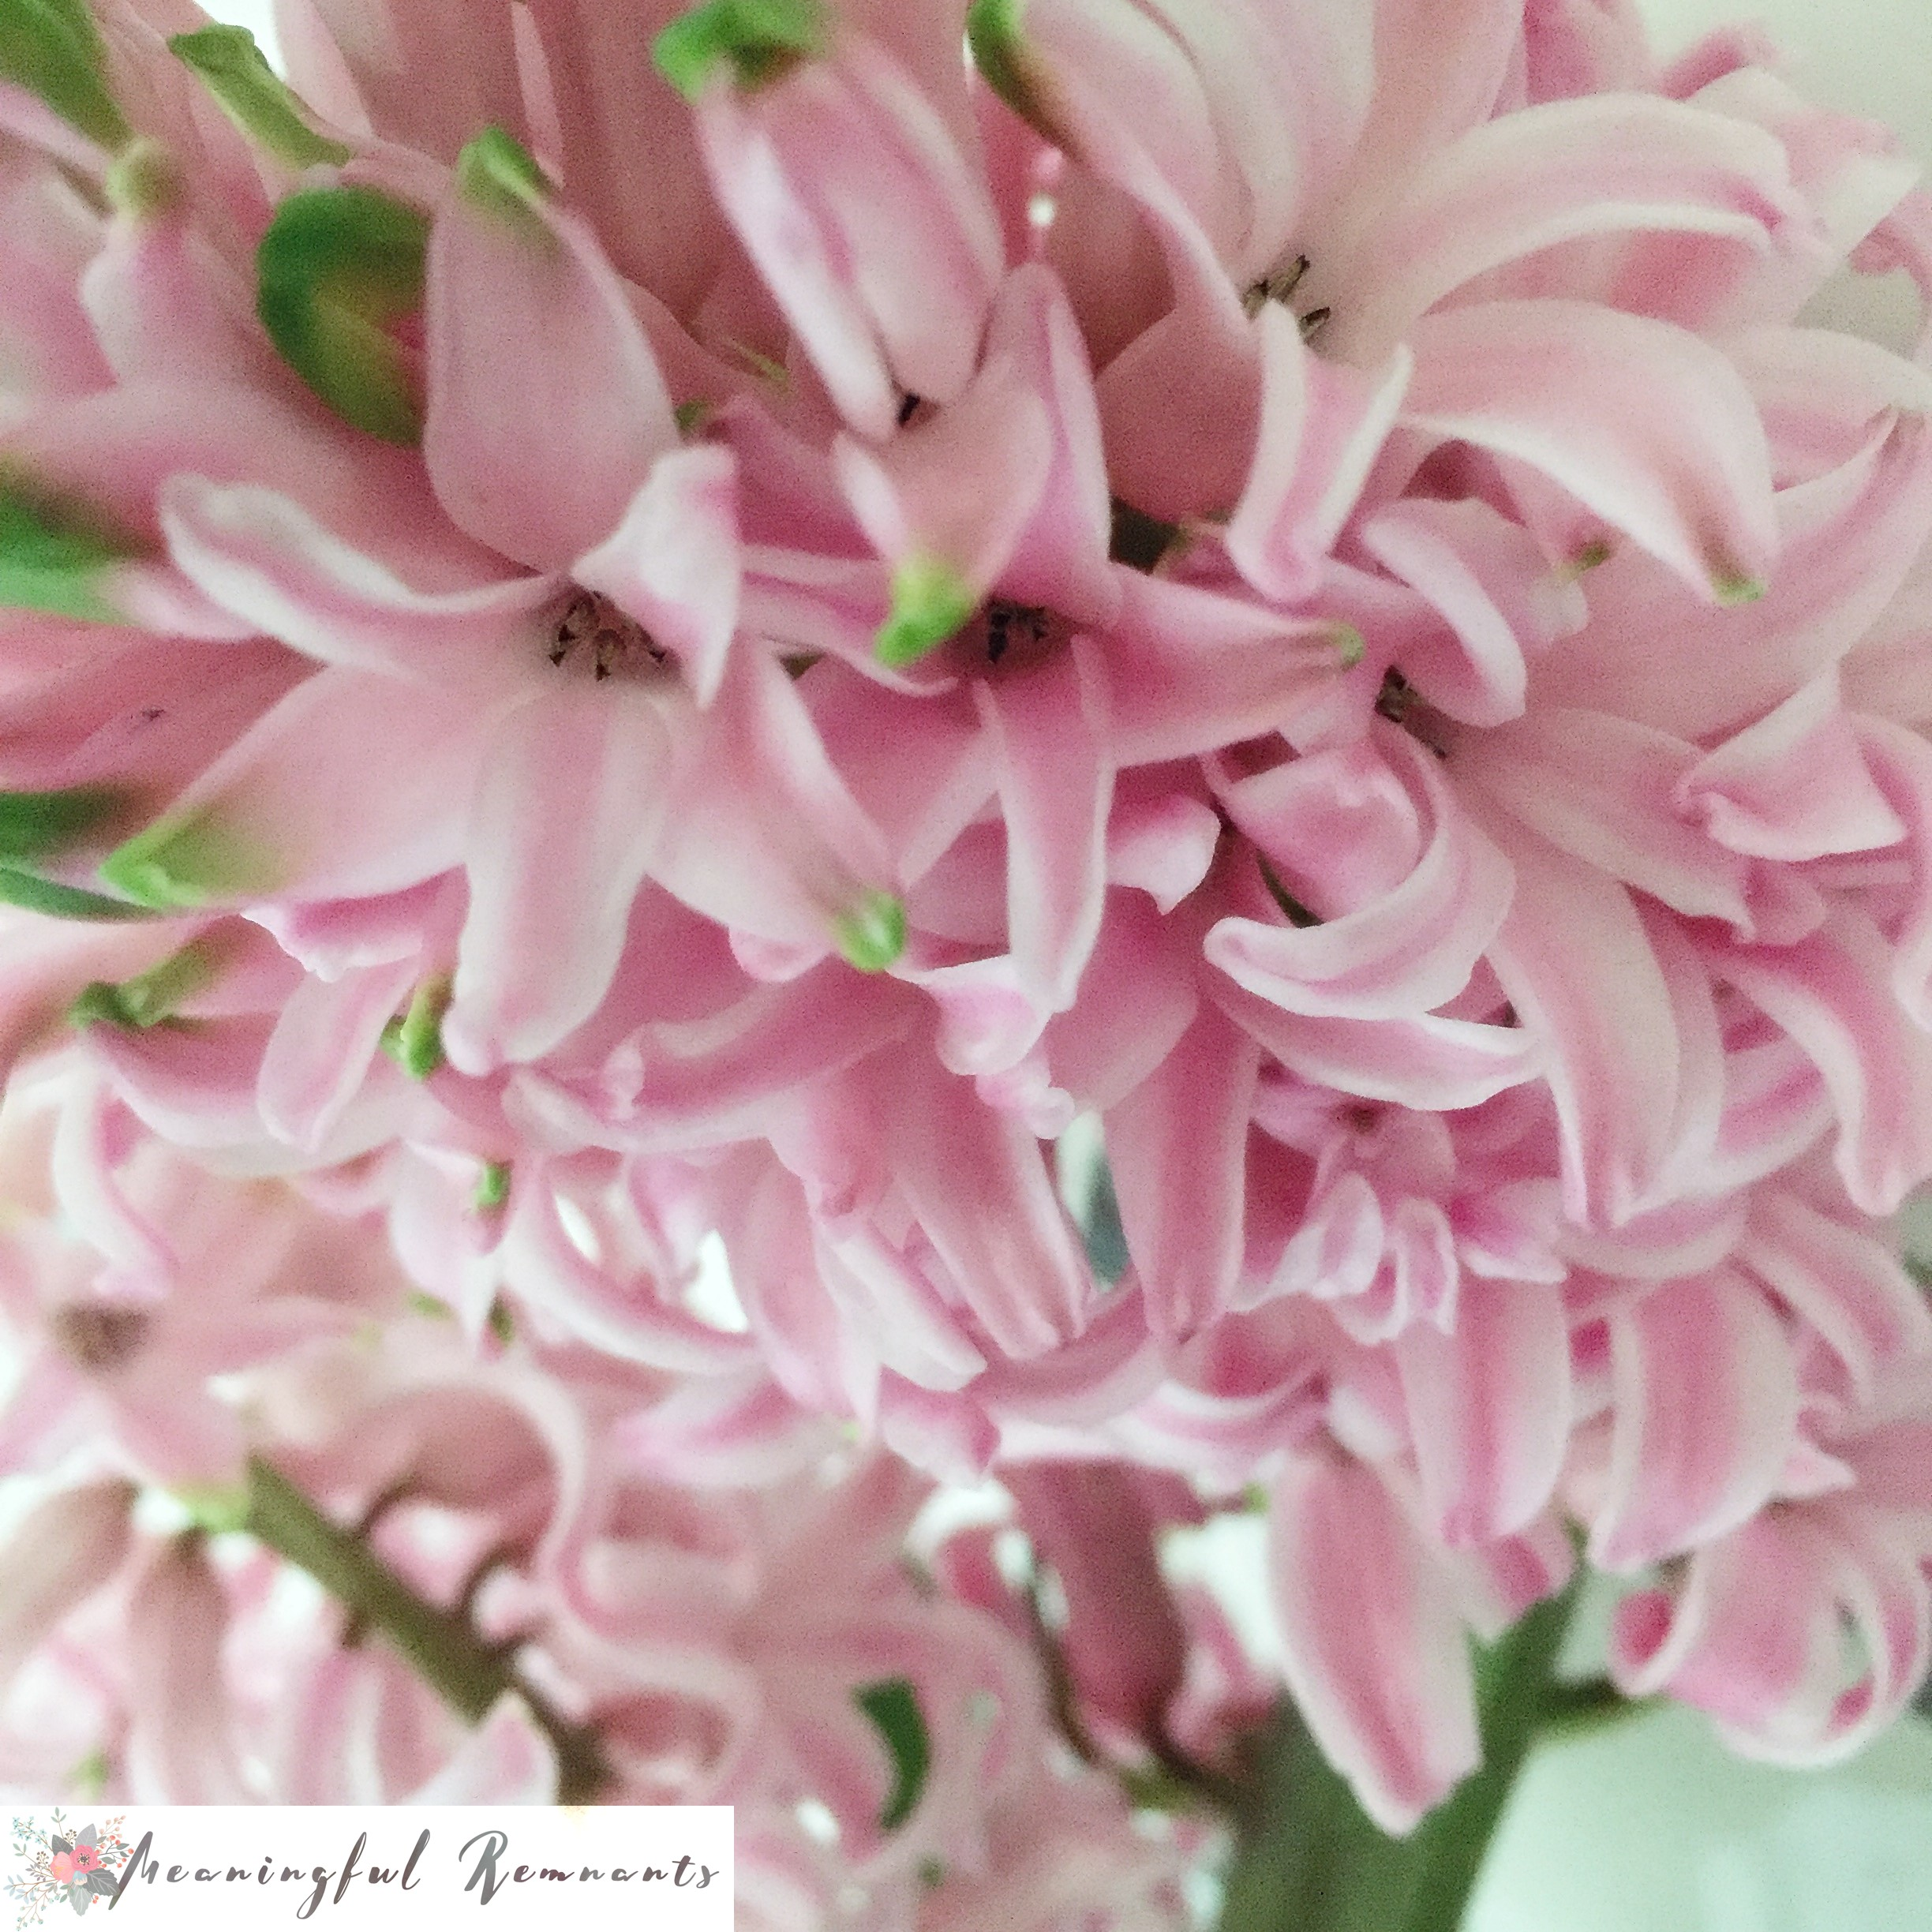 hyacinth bloom